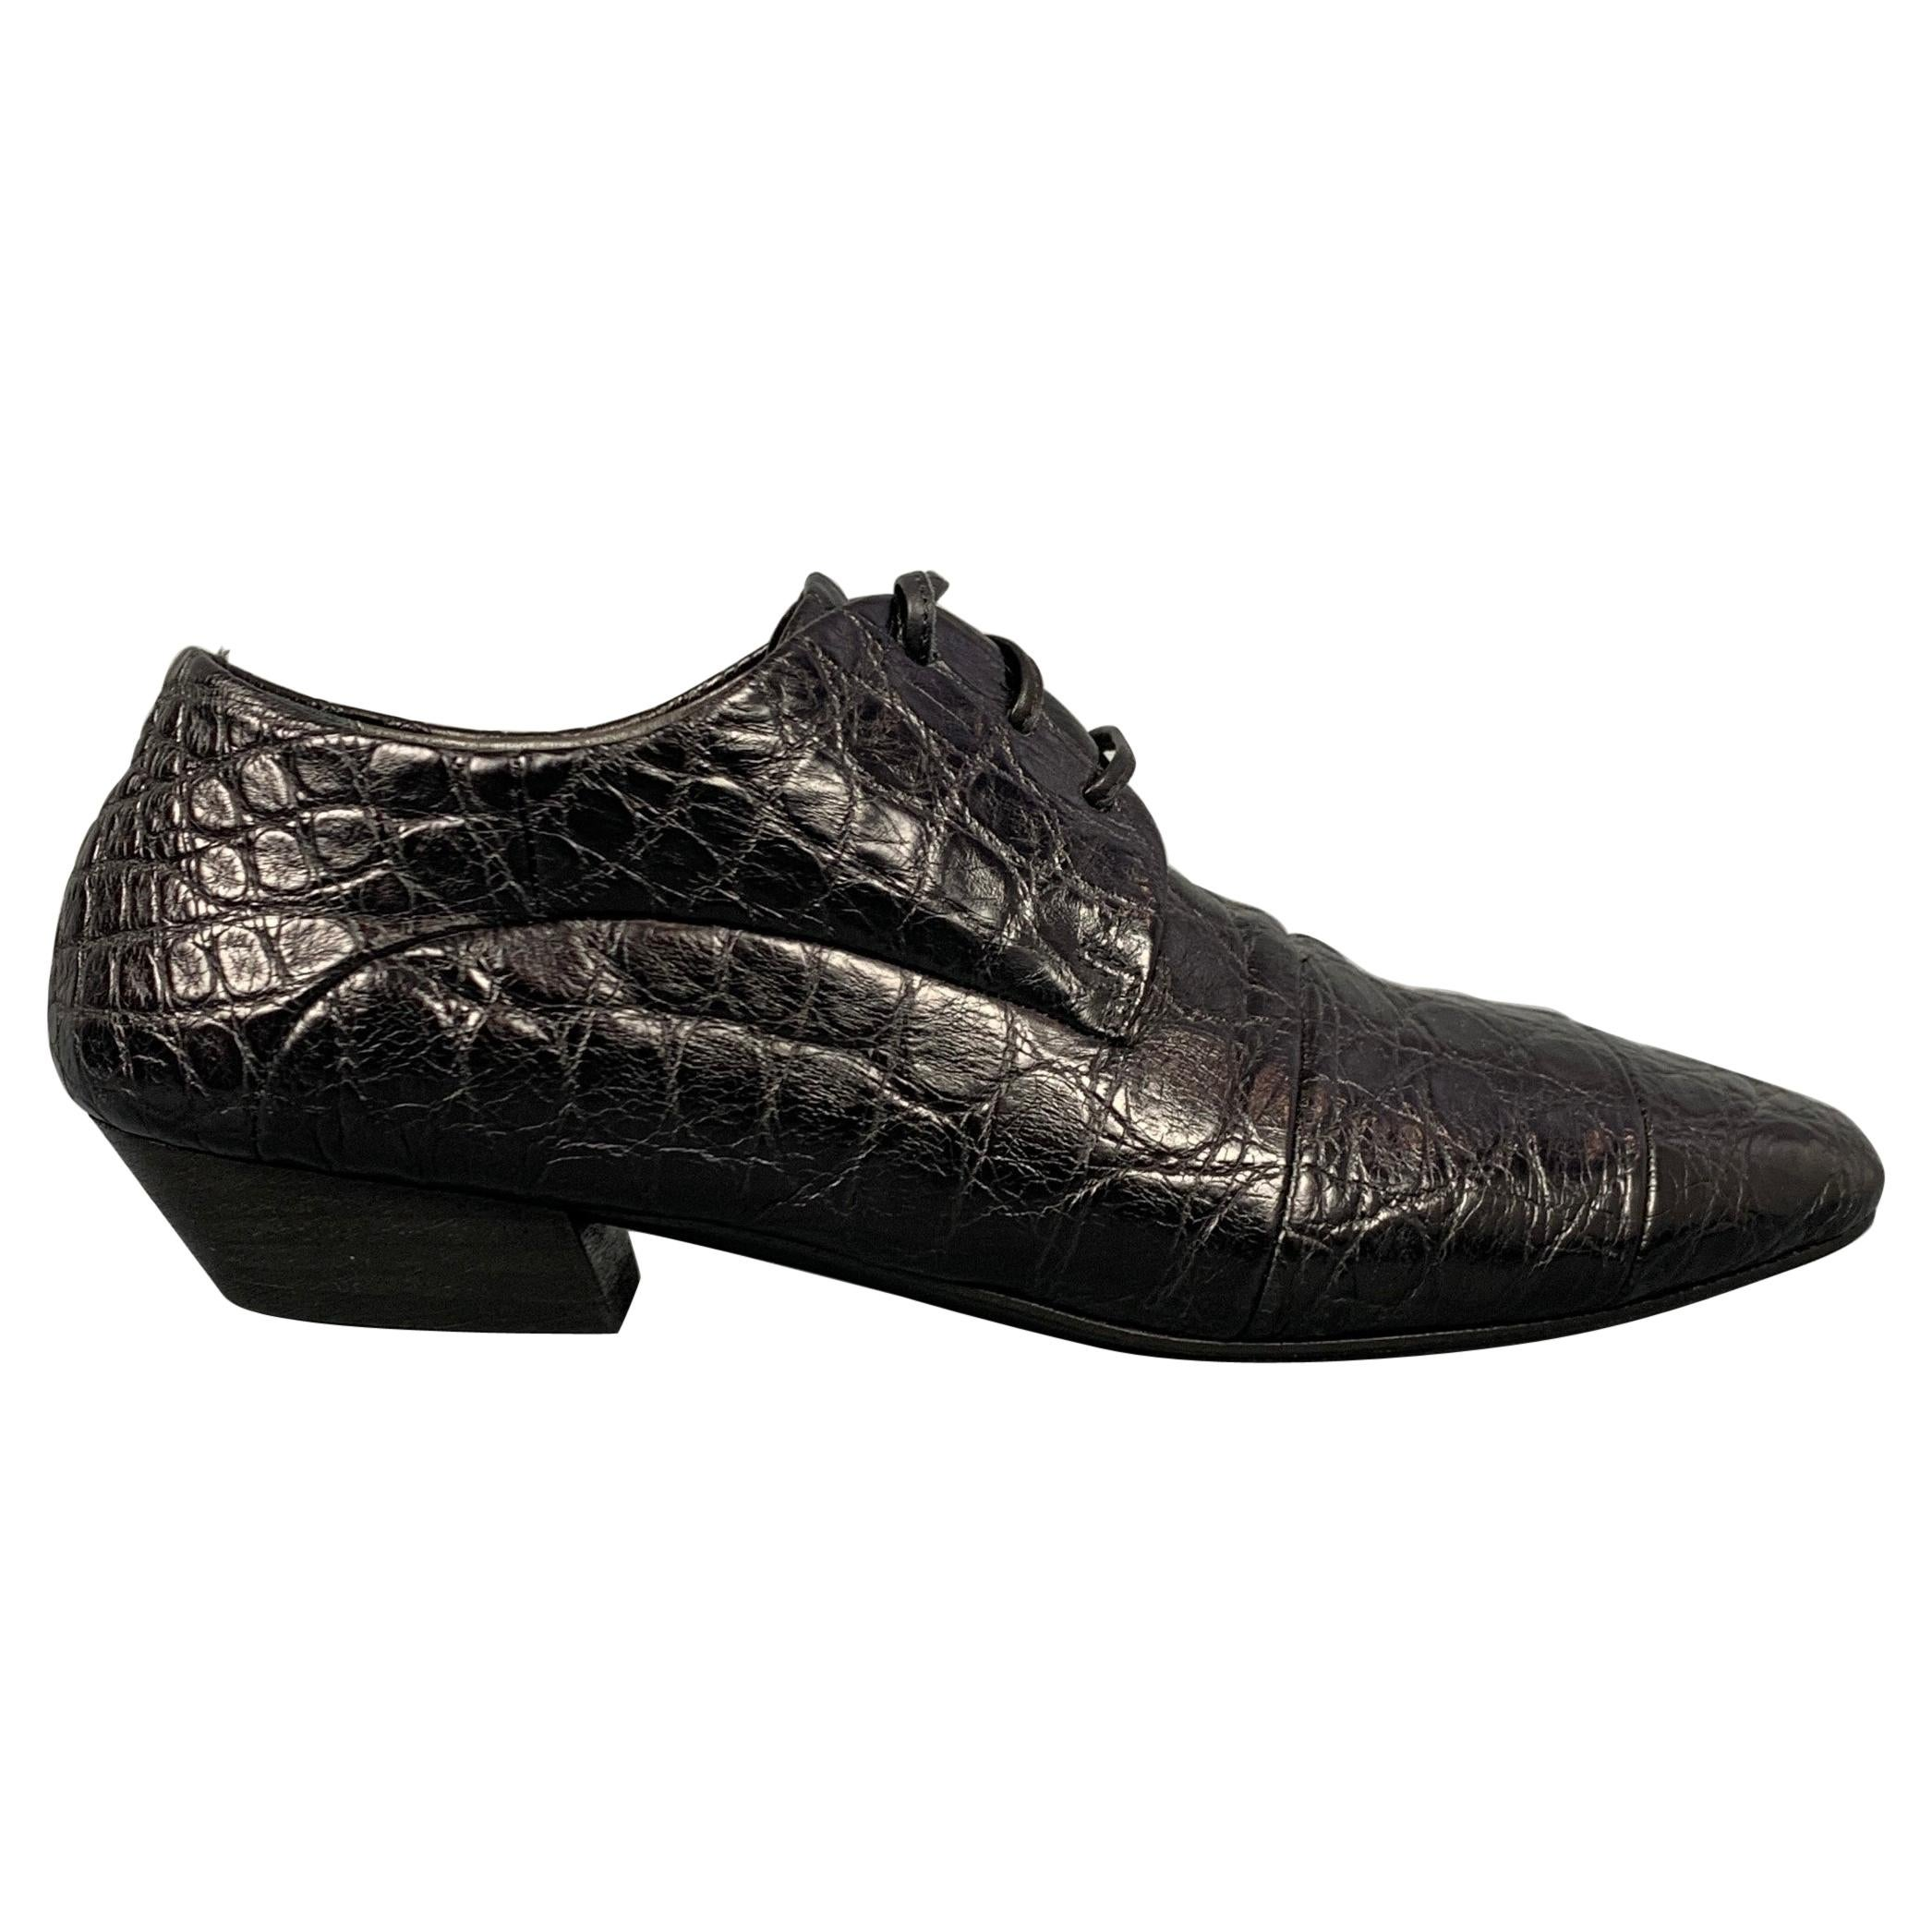 MARSELL Size 7 Black Embossed Leather Flat Laces